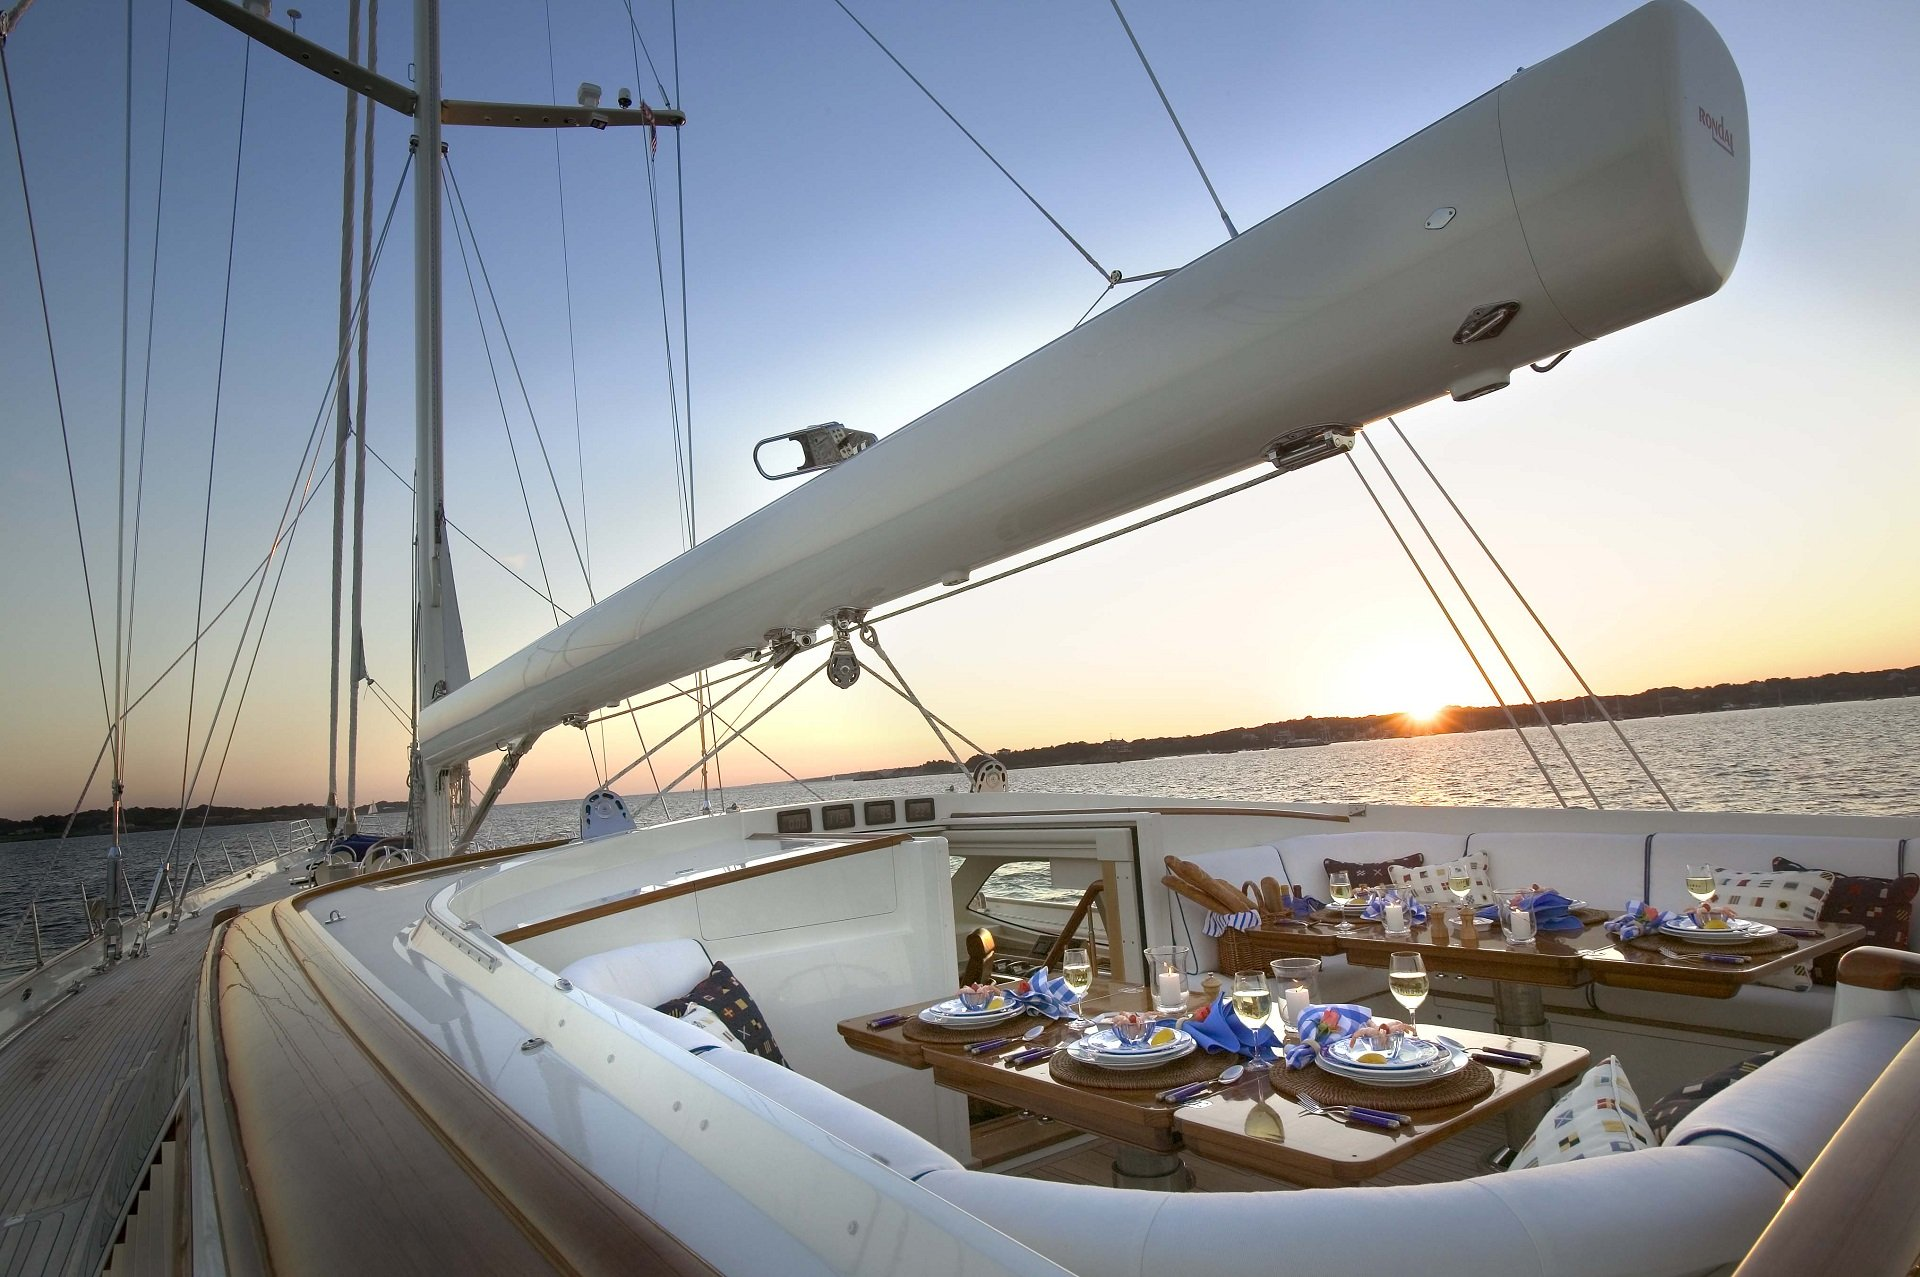 sailing yacht asolare's deck seating area featured in film runner runner (starring justin timberlake and ben affleck)